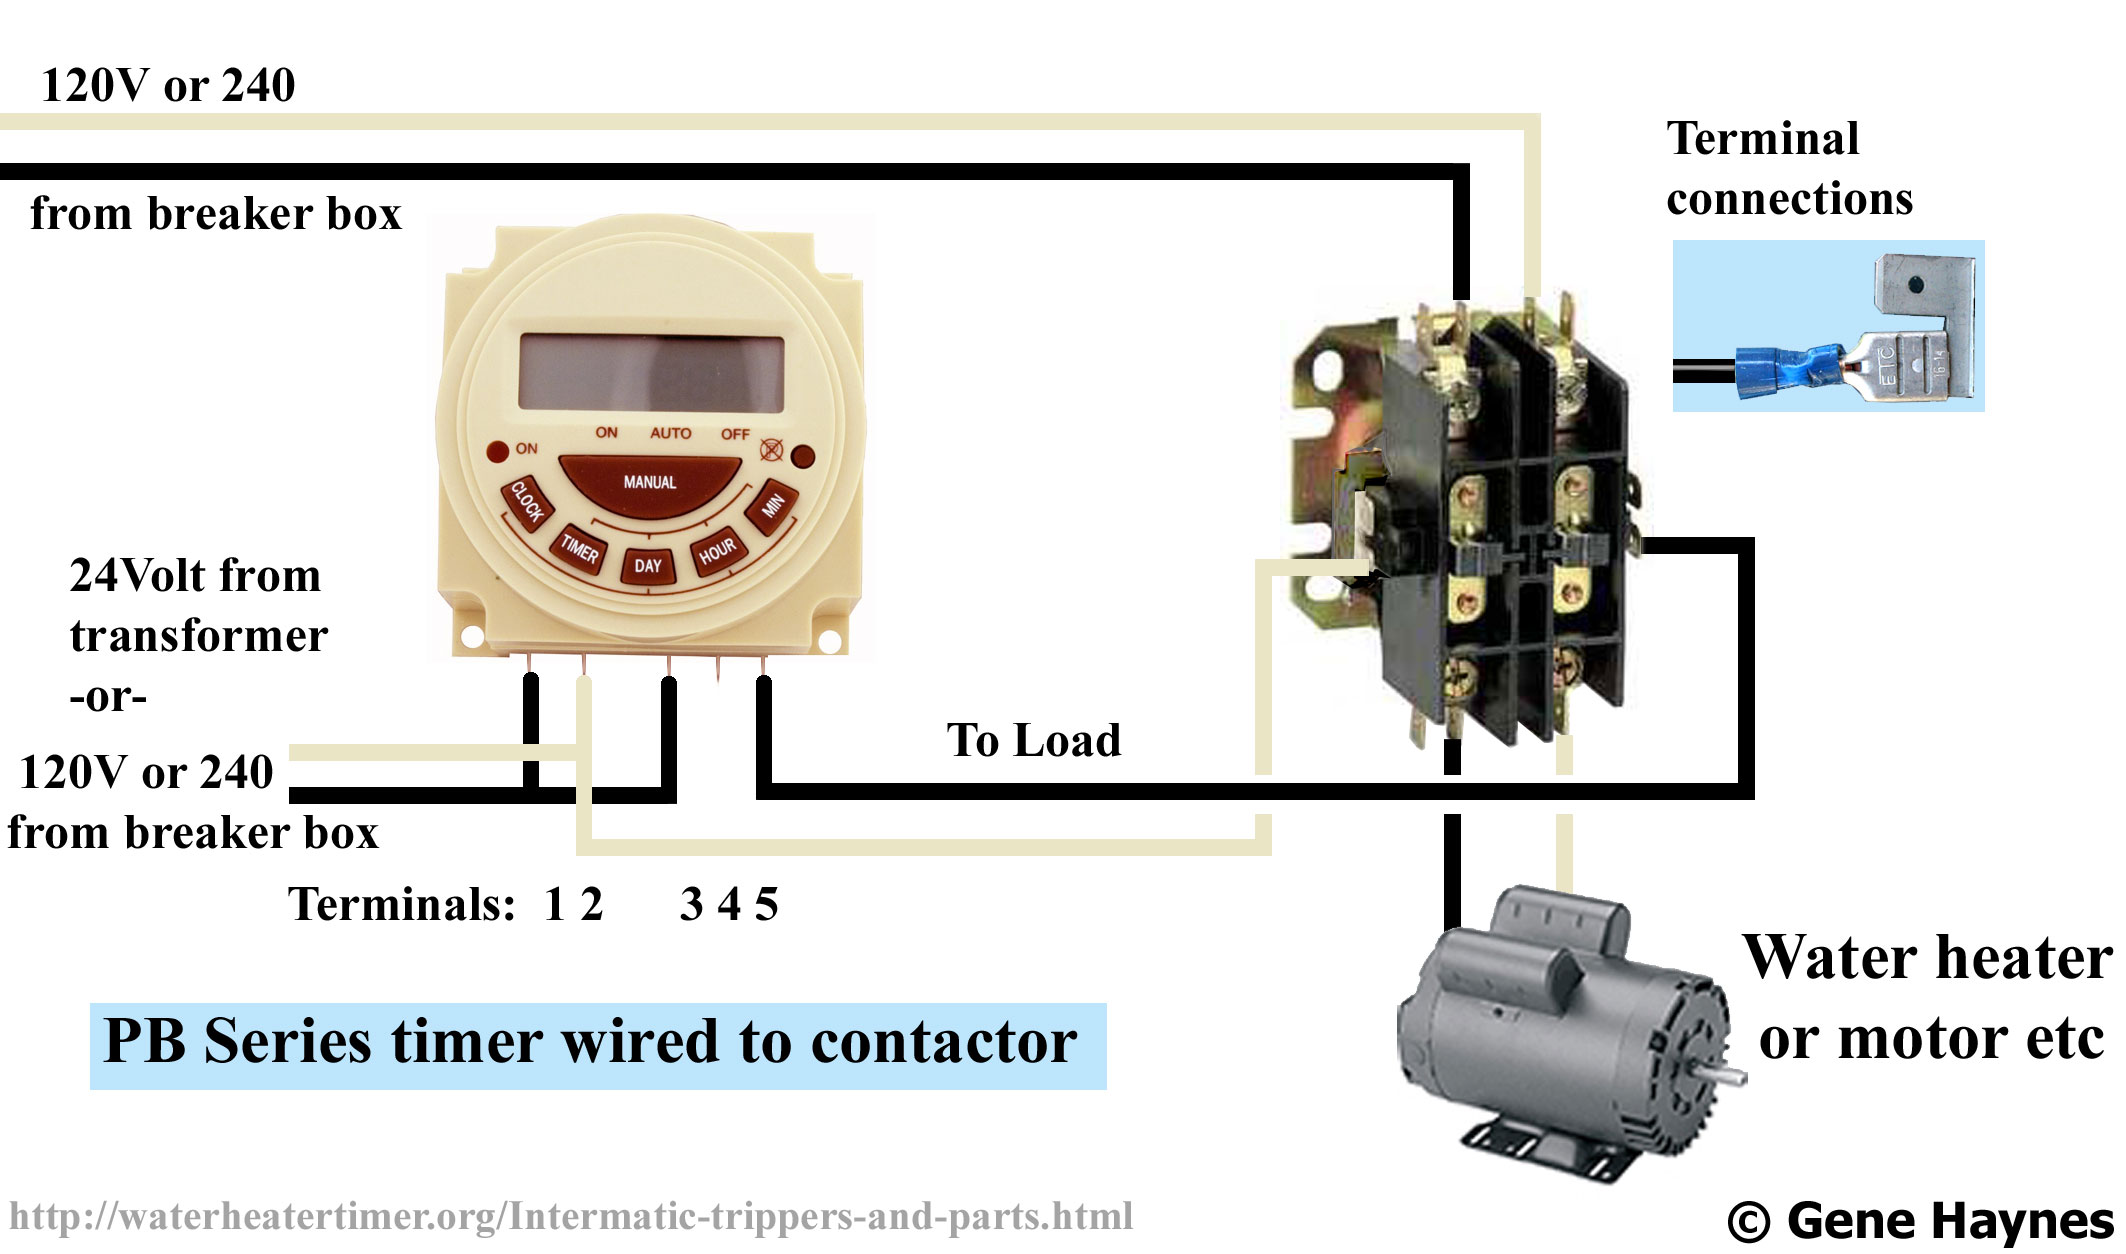 intermatic water heater timer wiring diagram ford focus stereo 2006 troubleshoot pb300 series